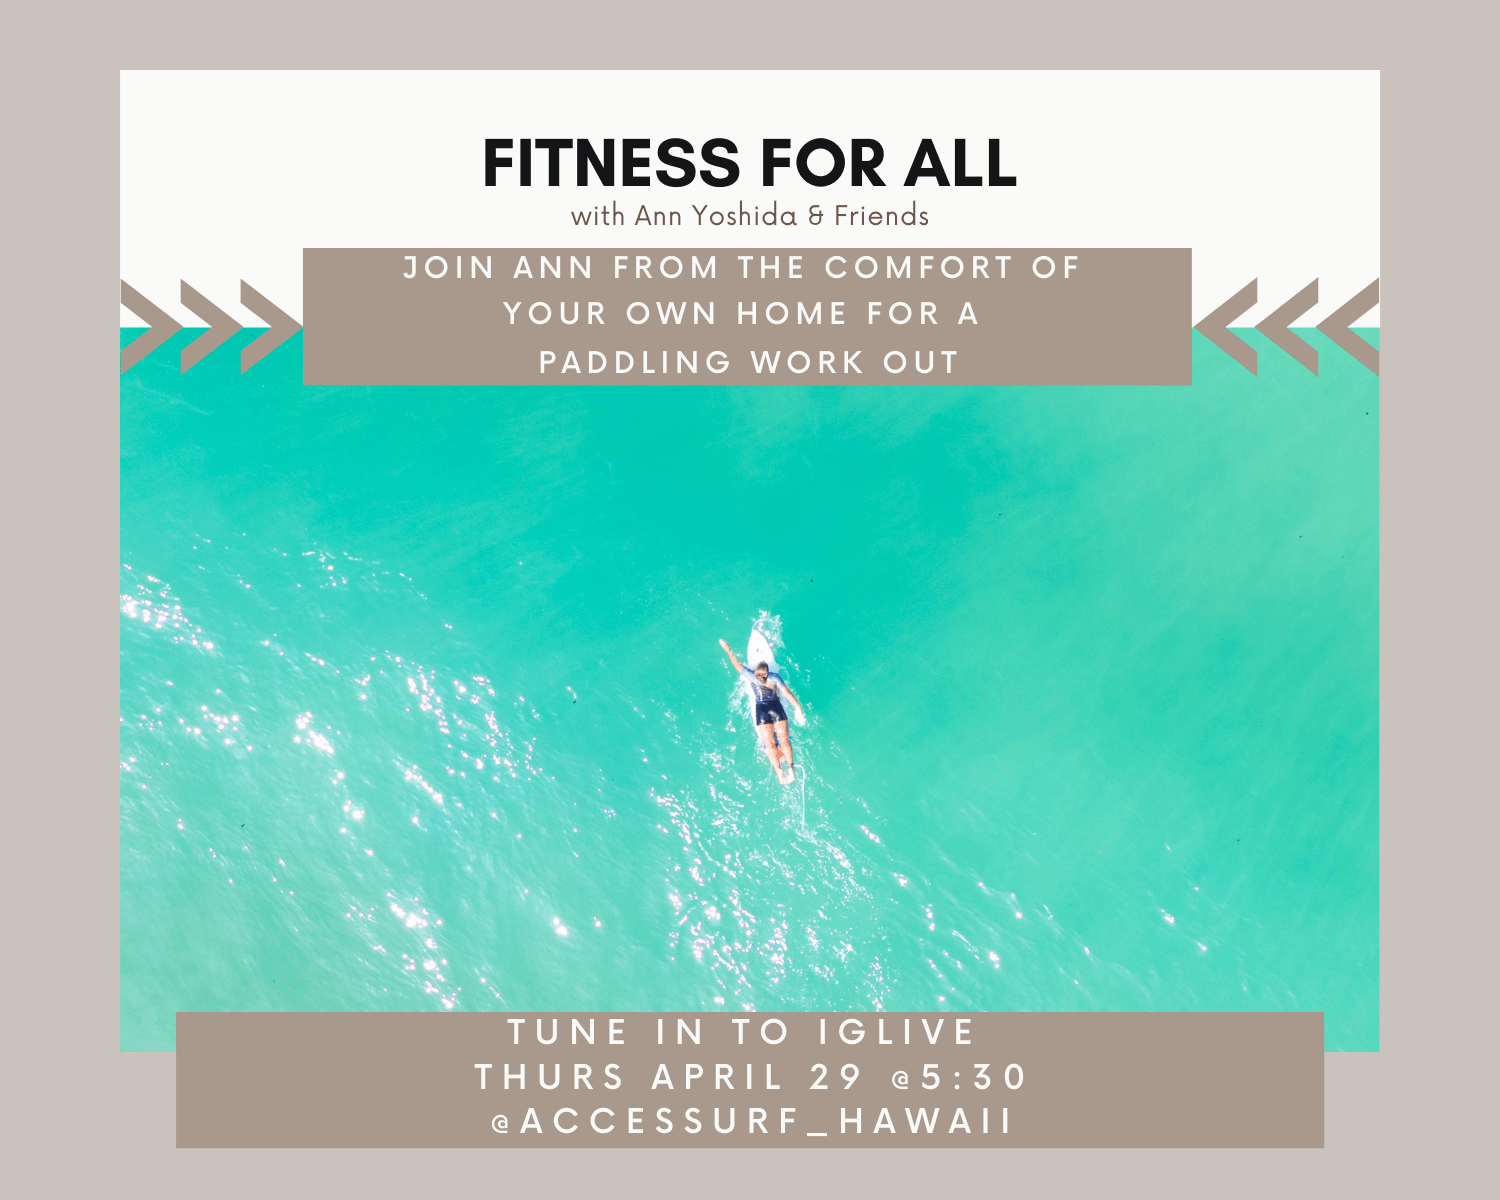 fitness for all flyer paddling workout